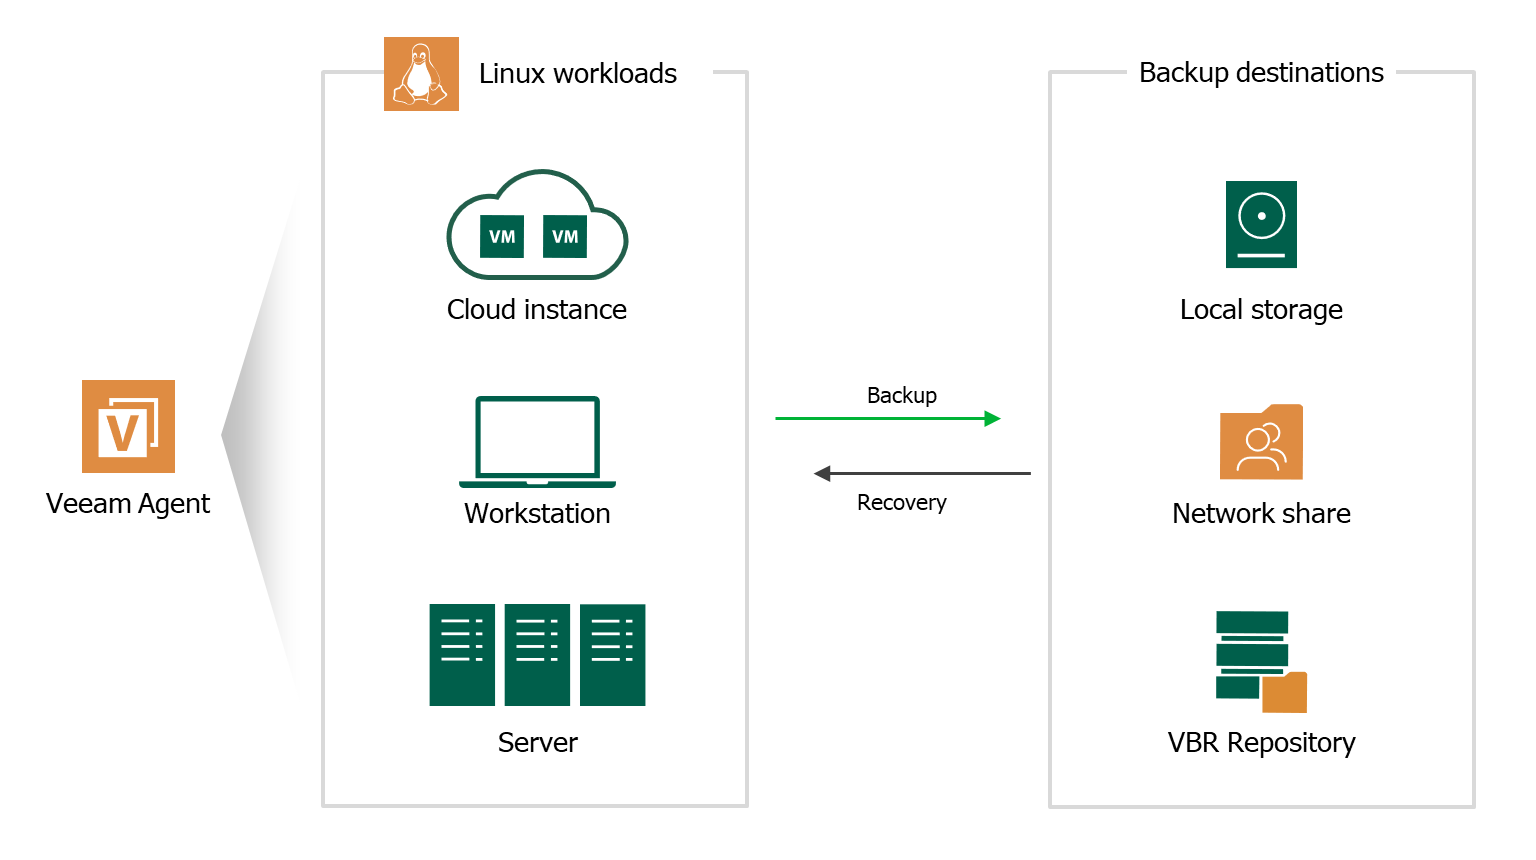 Free Backup for Linux workloads - Veeam Agent for Linux